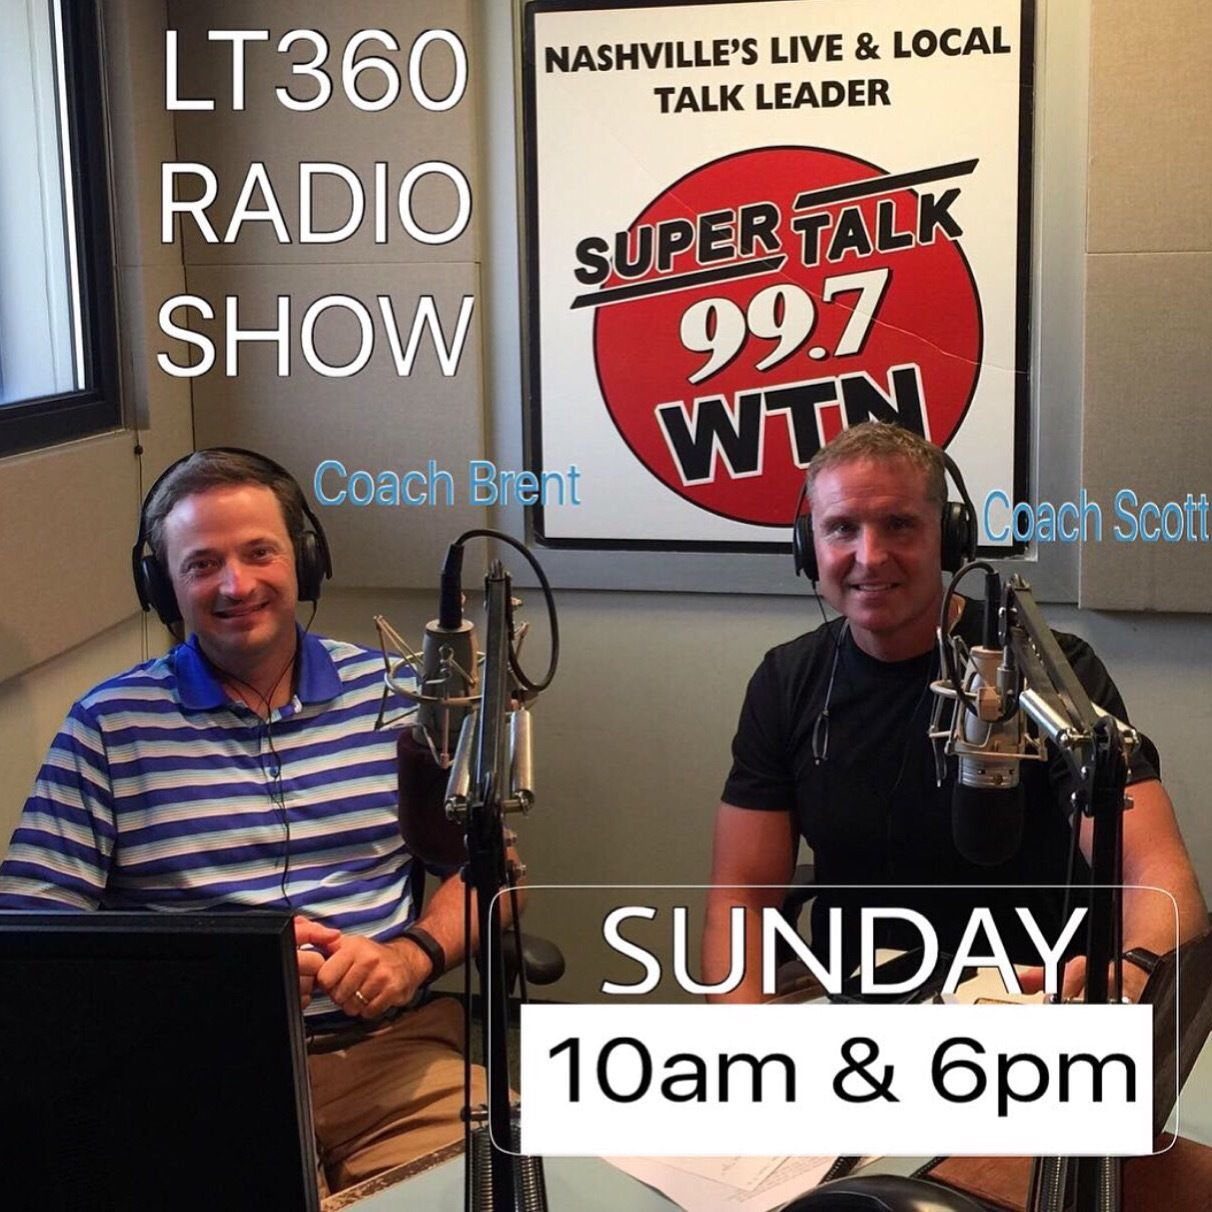 Tune In! 99.7 WTN is also on iHeartRadio sunday